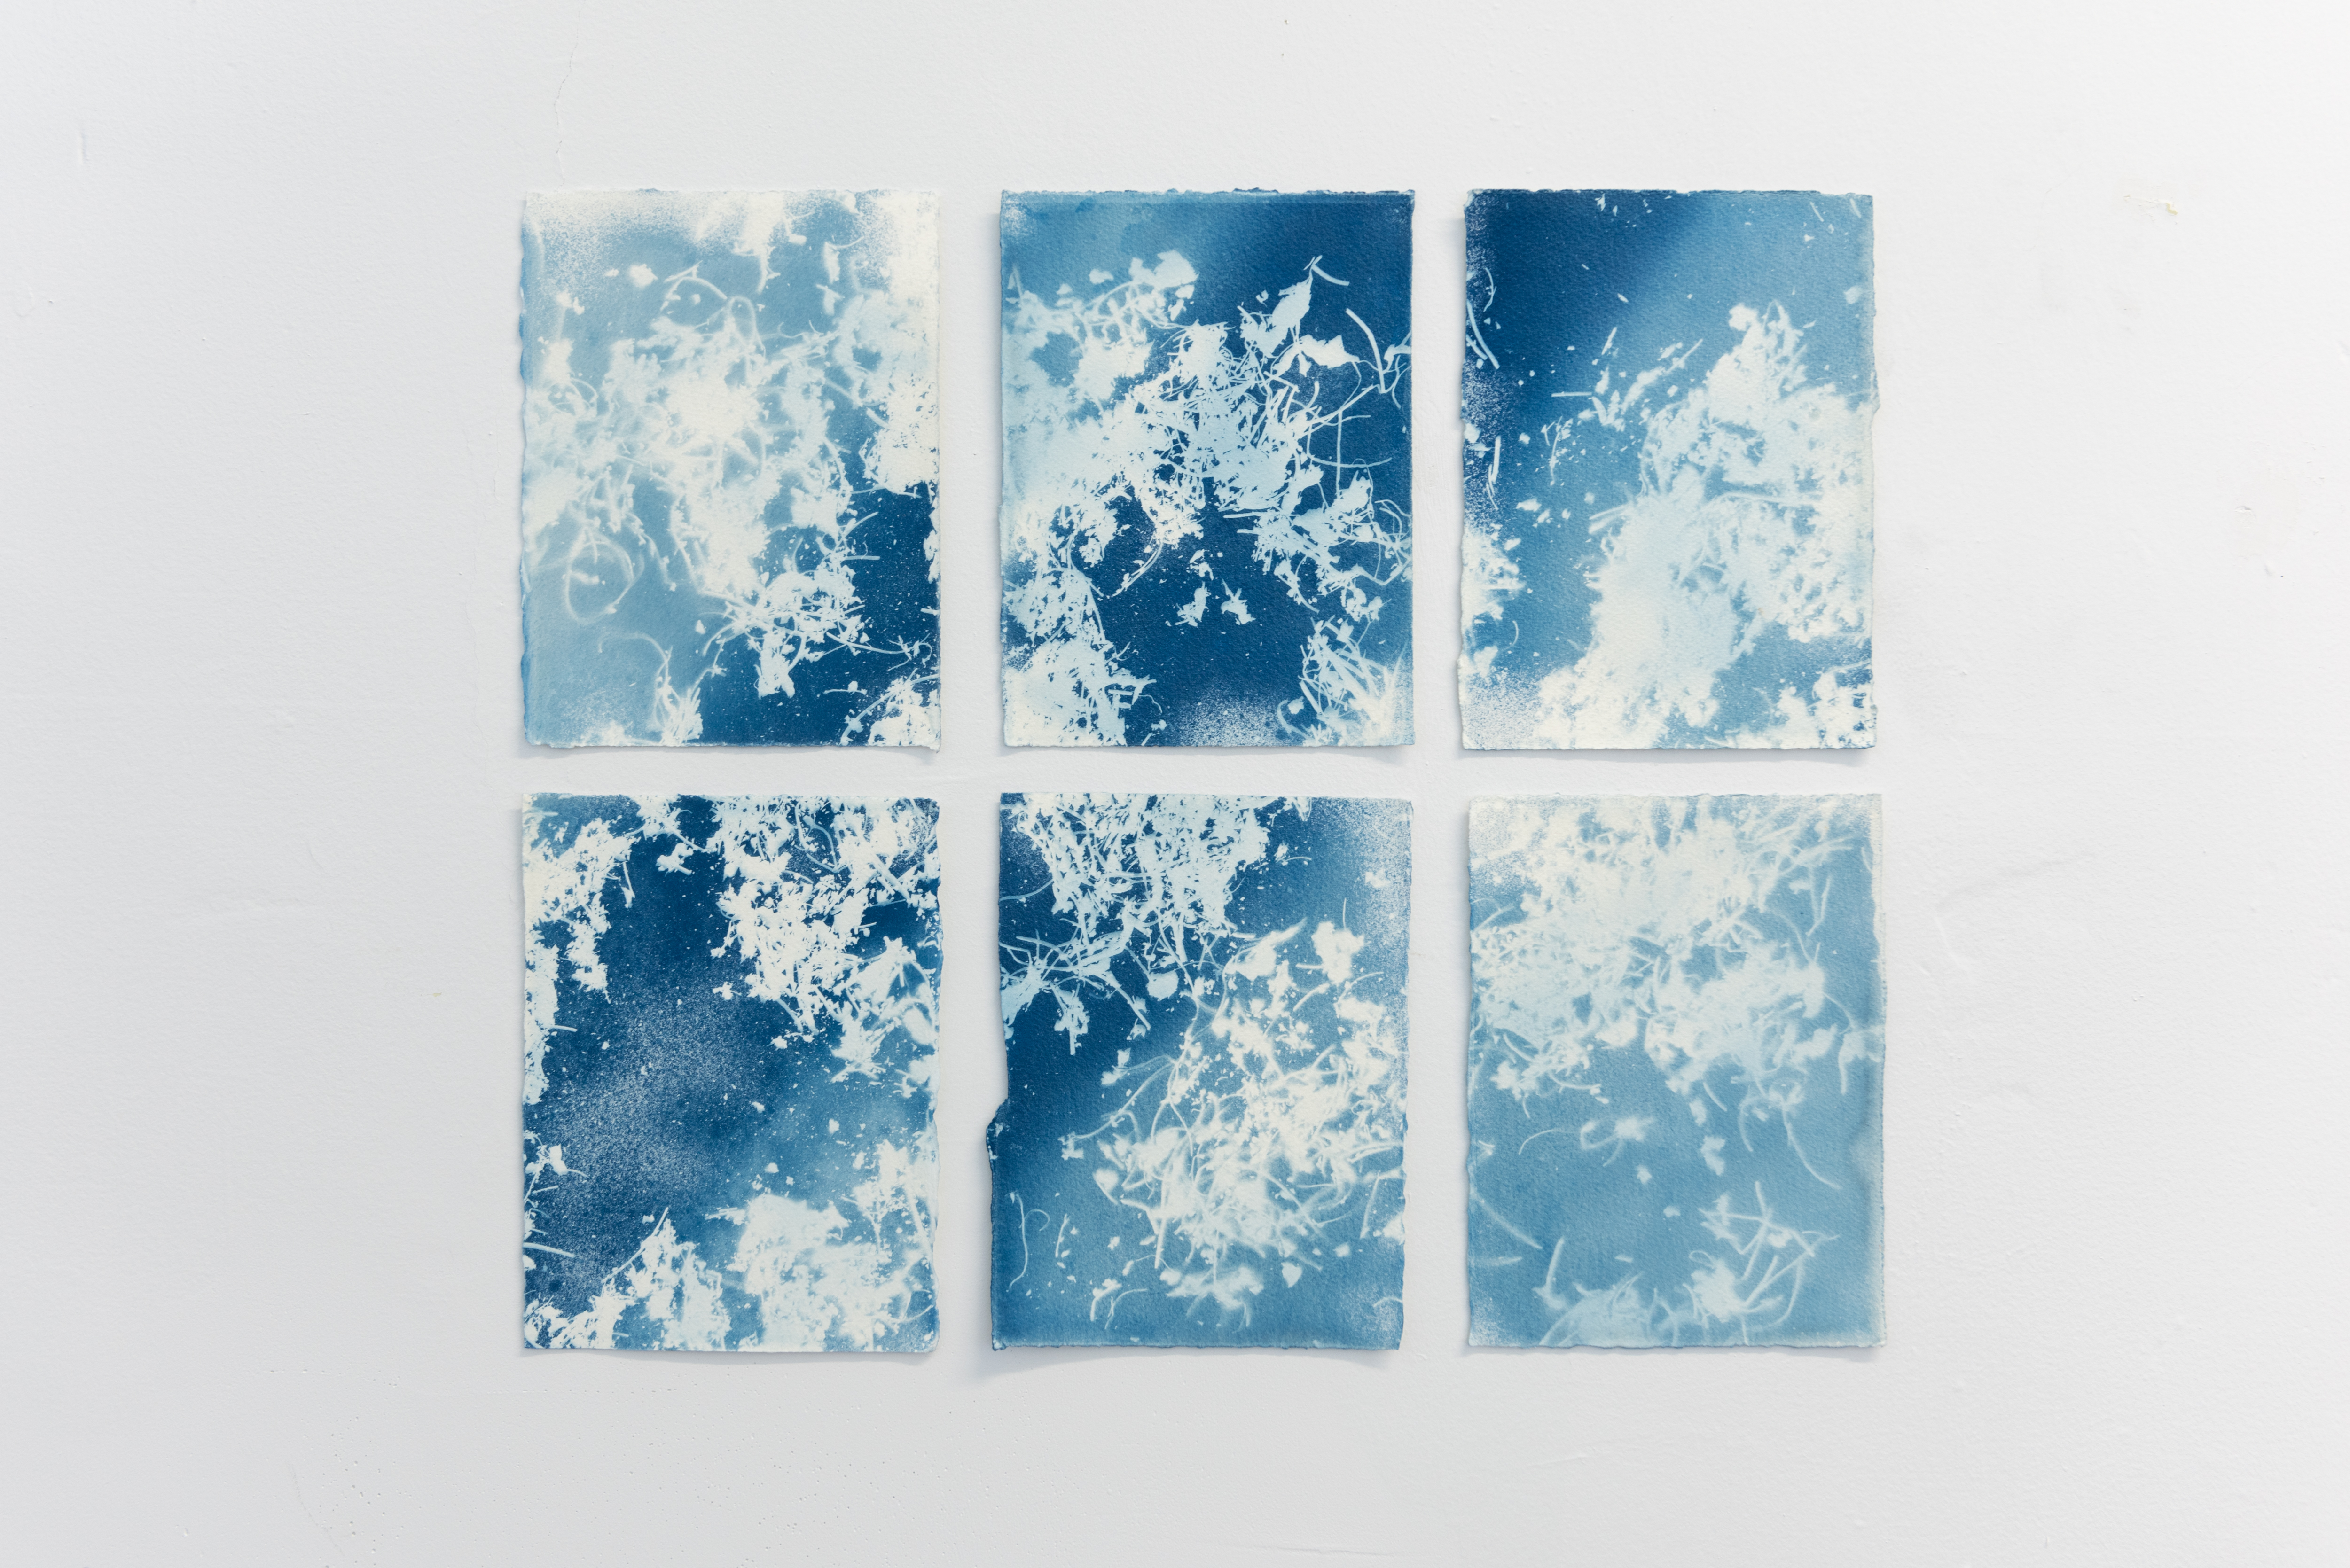 Cyanotypes Marie-Claude Drolet